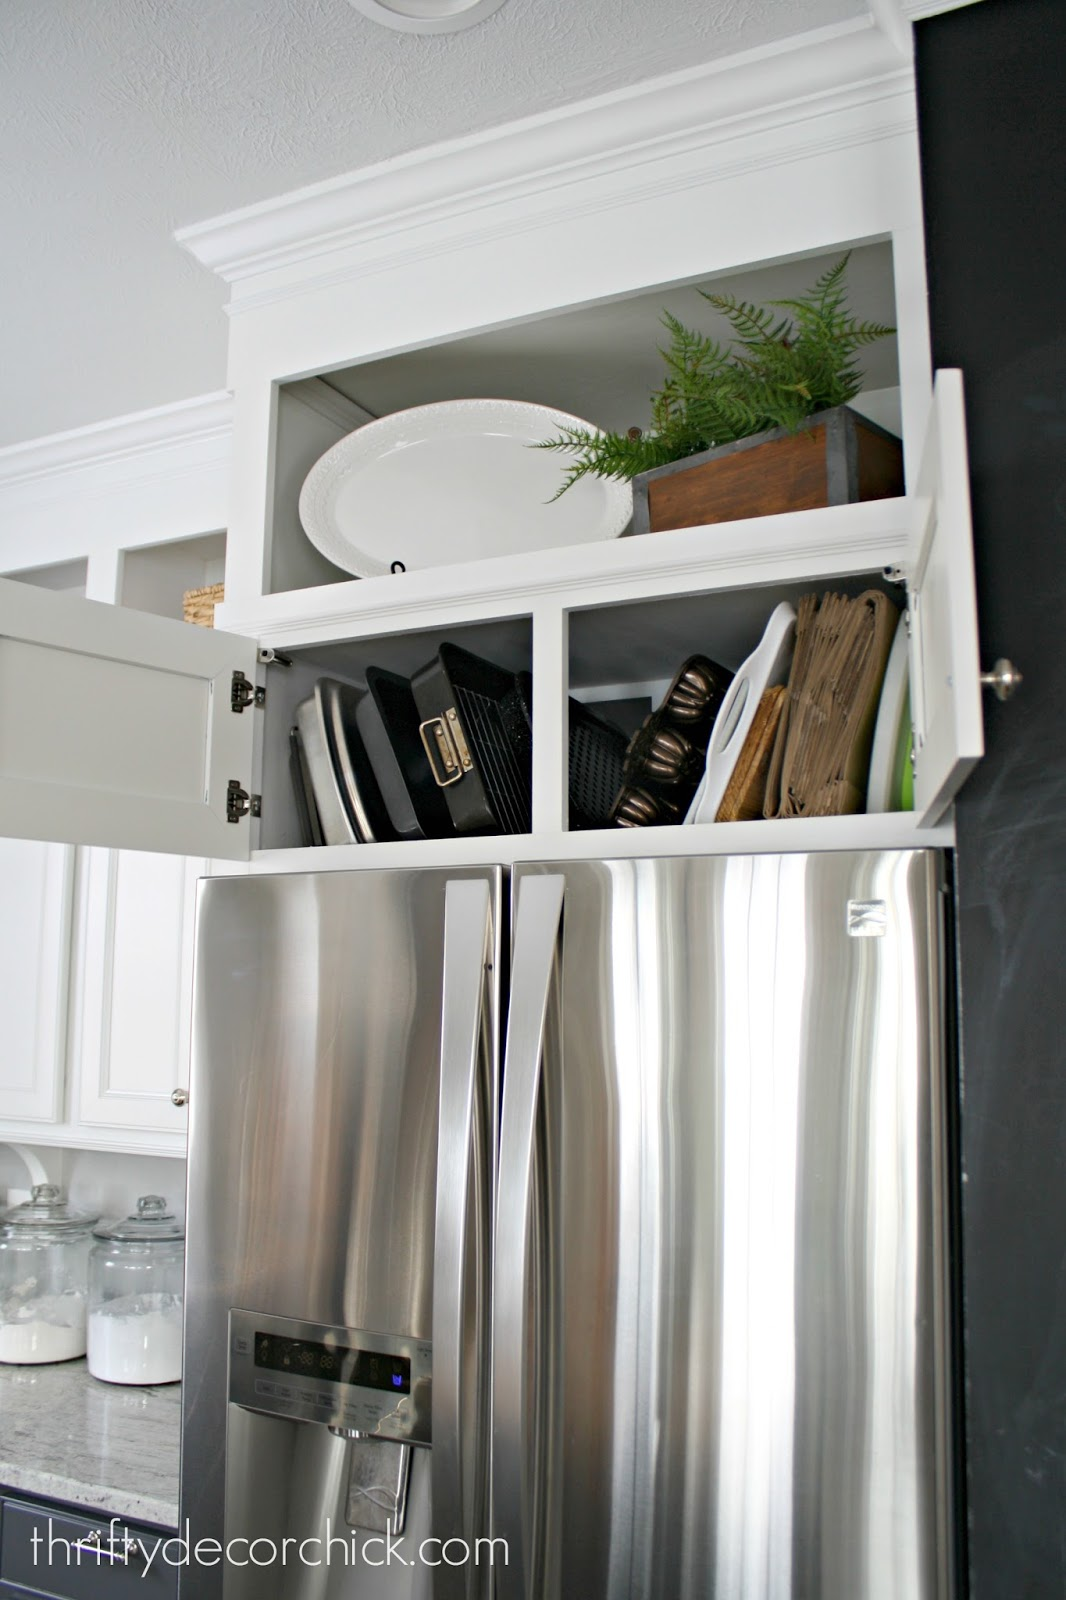 How Easily Organize Awkward Pans Above The Fridge From Thrifty Decor Chick